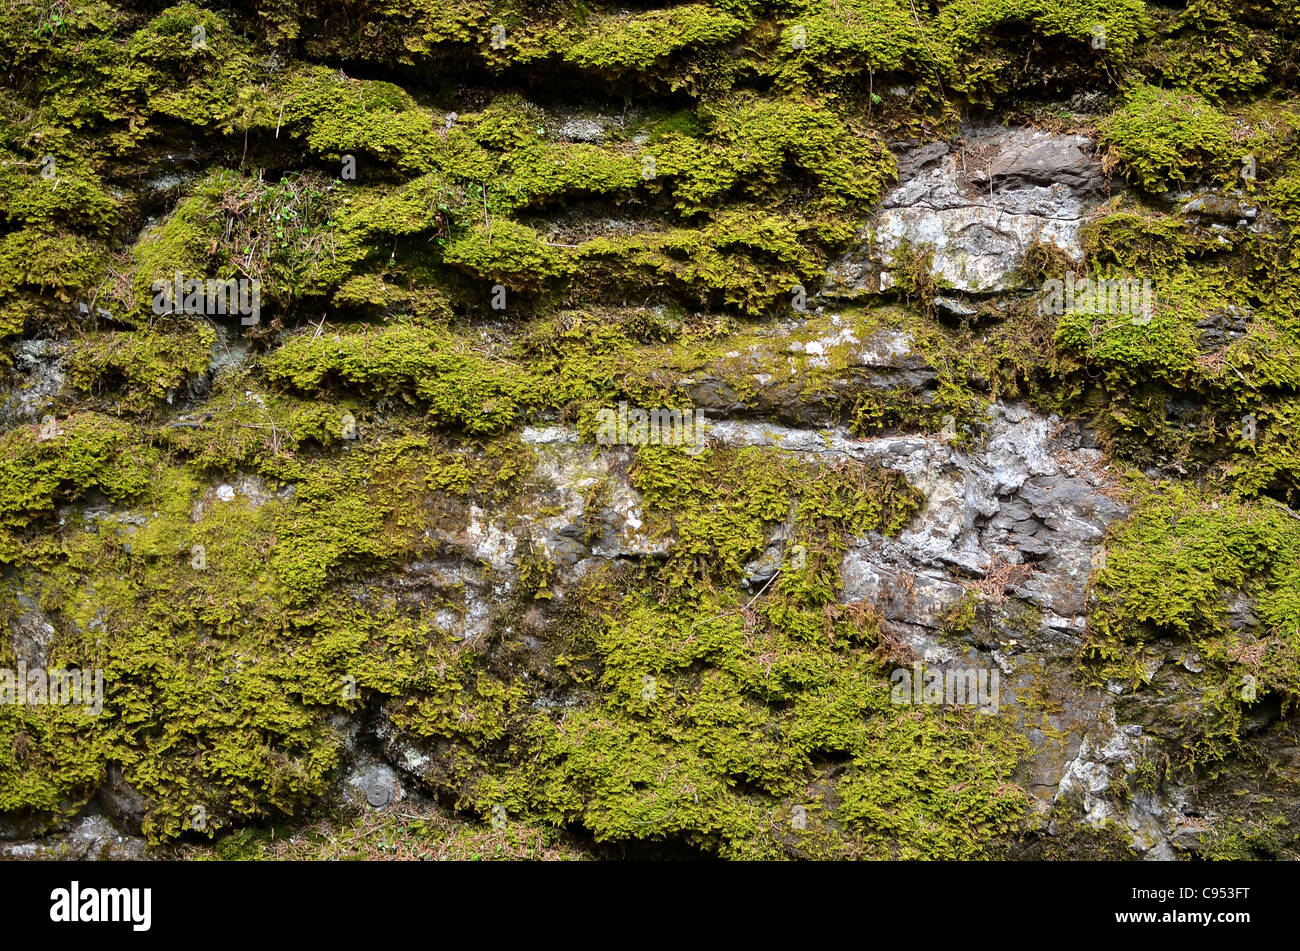 Lichen or moss growing on a damp wall by the side of the road just outside the village of Wengen, Switzerland. - Stock Image